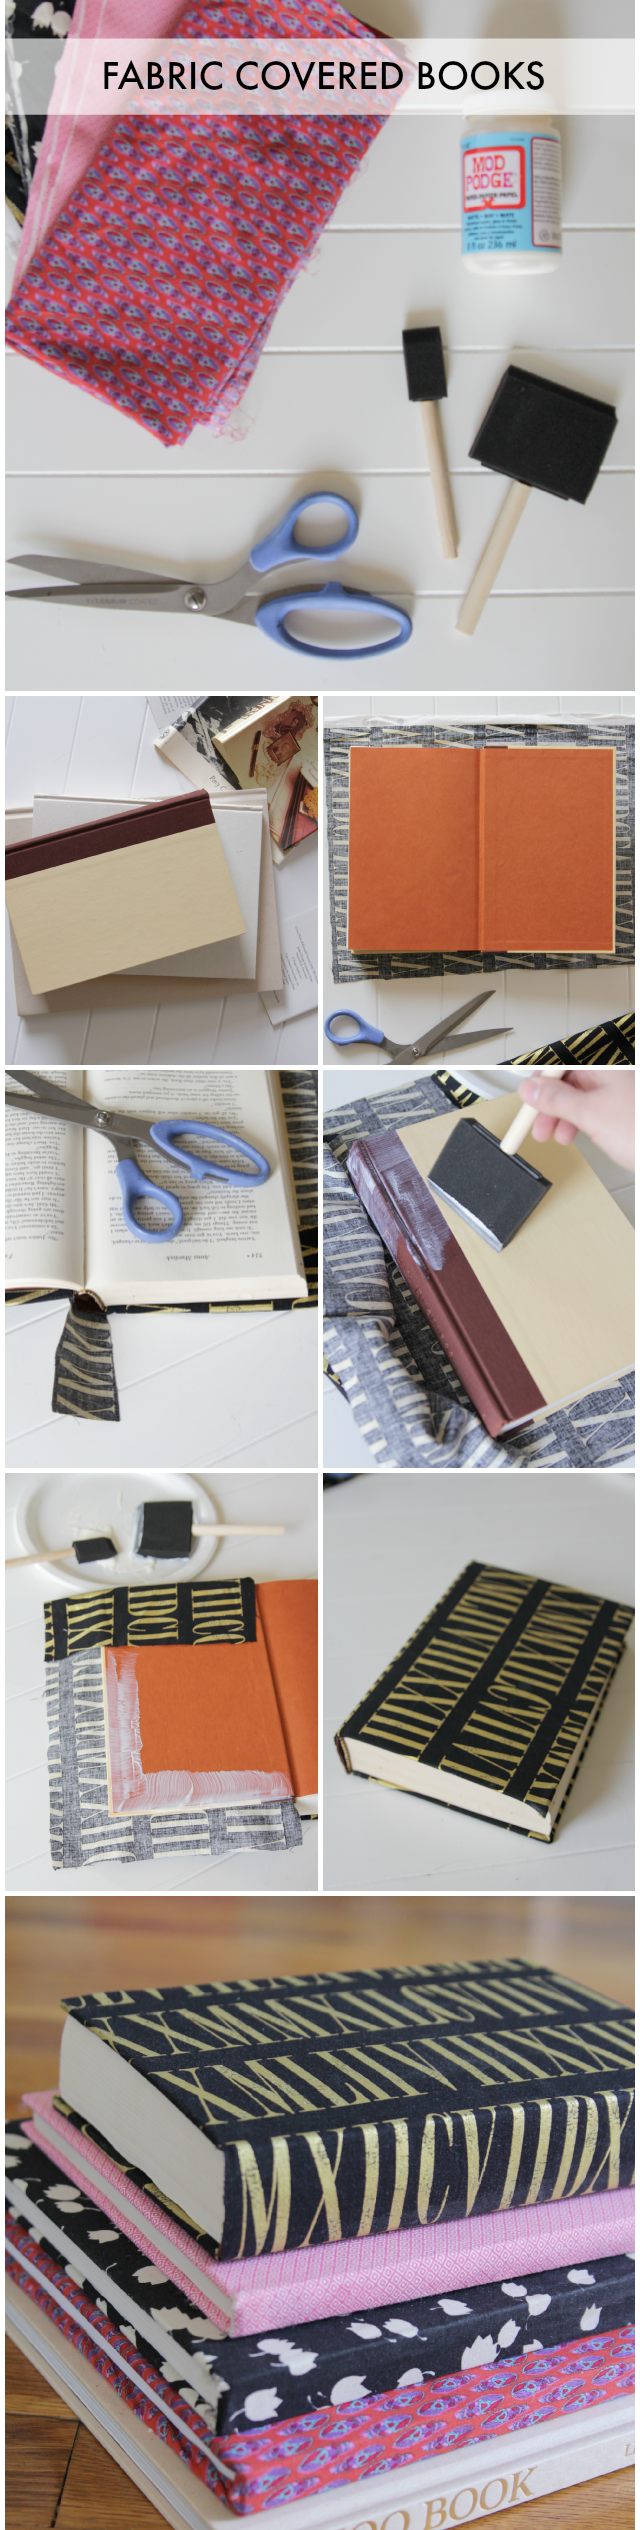 Fabric Covered Book ~ Fabric covered books